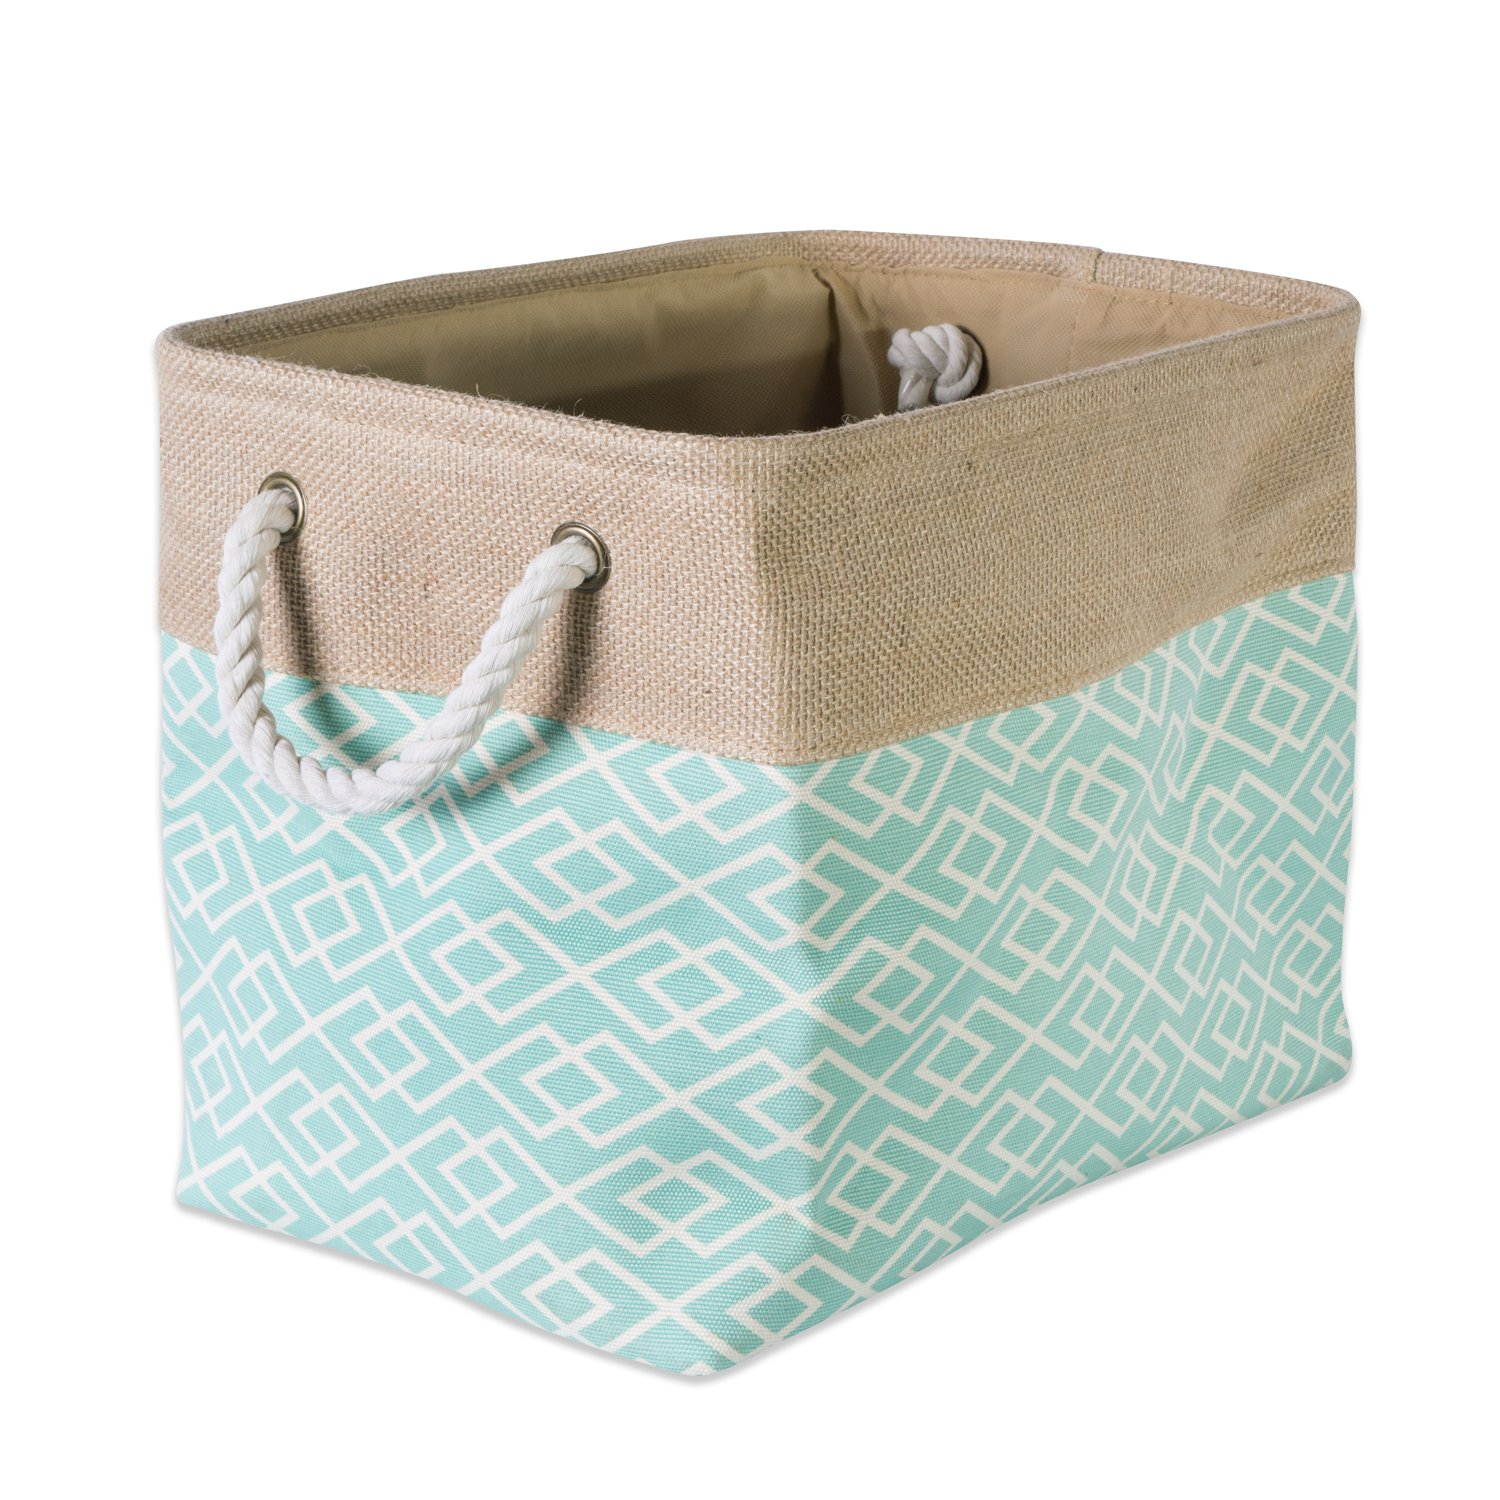 DII Collapsible Burlap Storage Basket or Bin with Durable Cotton Handles, Home Organizational Solution for Office, Bedroom, Closet, Toys, Laundry (Medium - 16x10x12), Diamond Aqua by DII